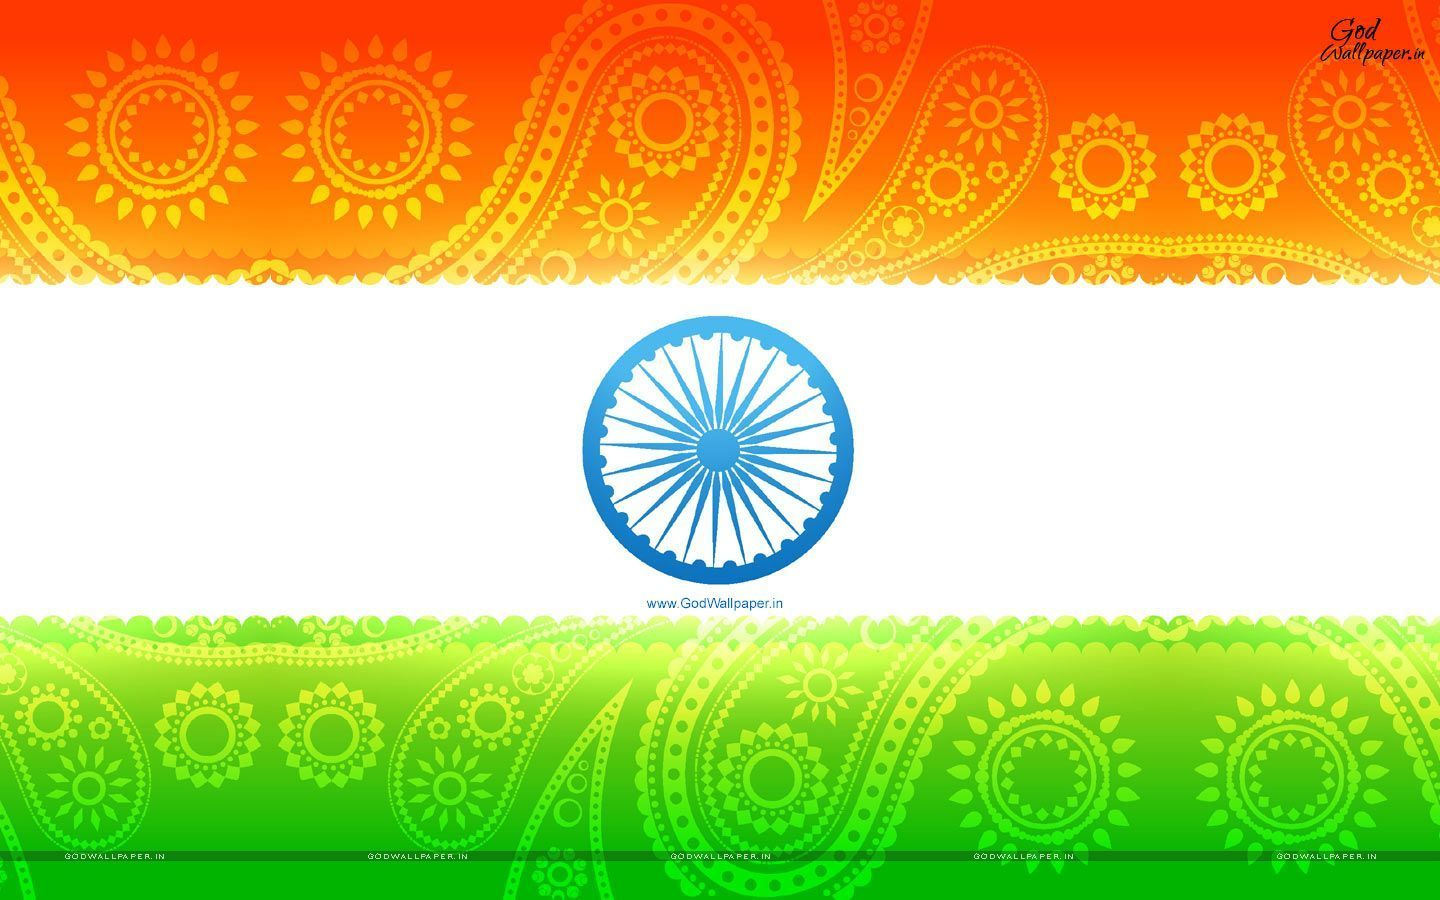 Indian Flag Hd Wallpaper: India Flag Wallpaper 2015